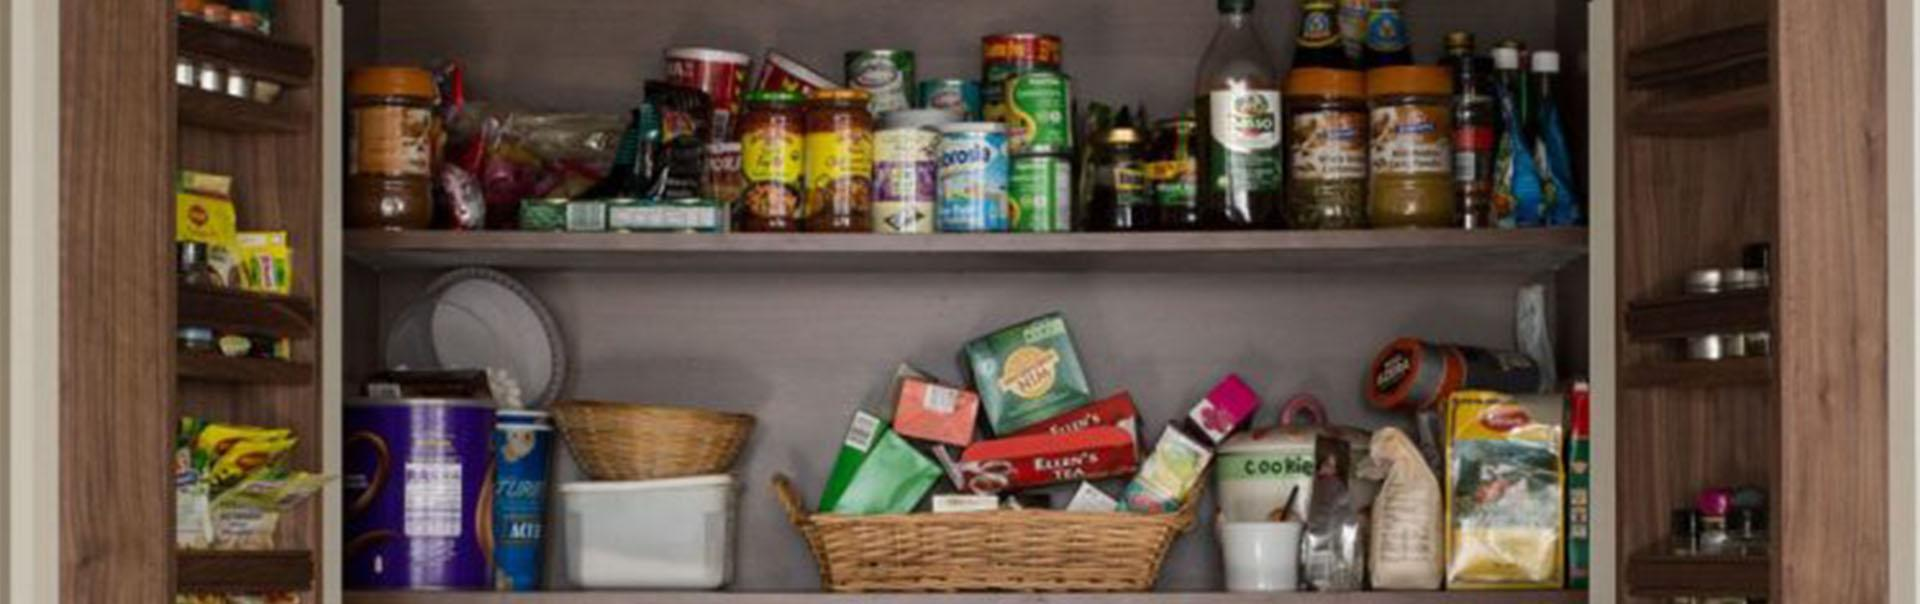 Cupboard ingredients other.